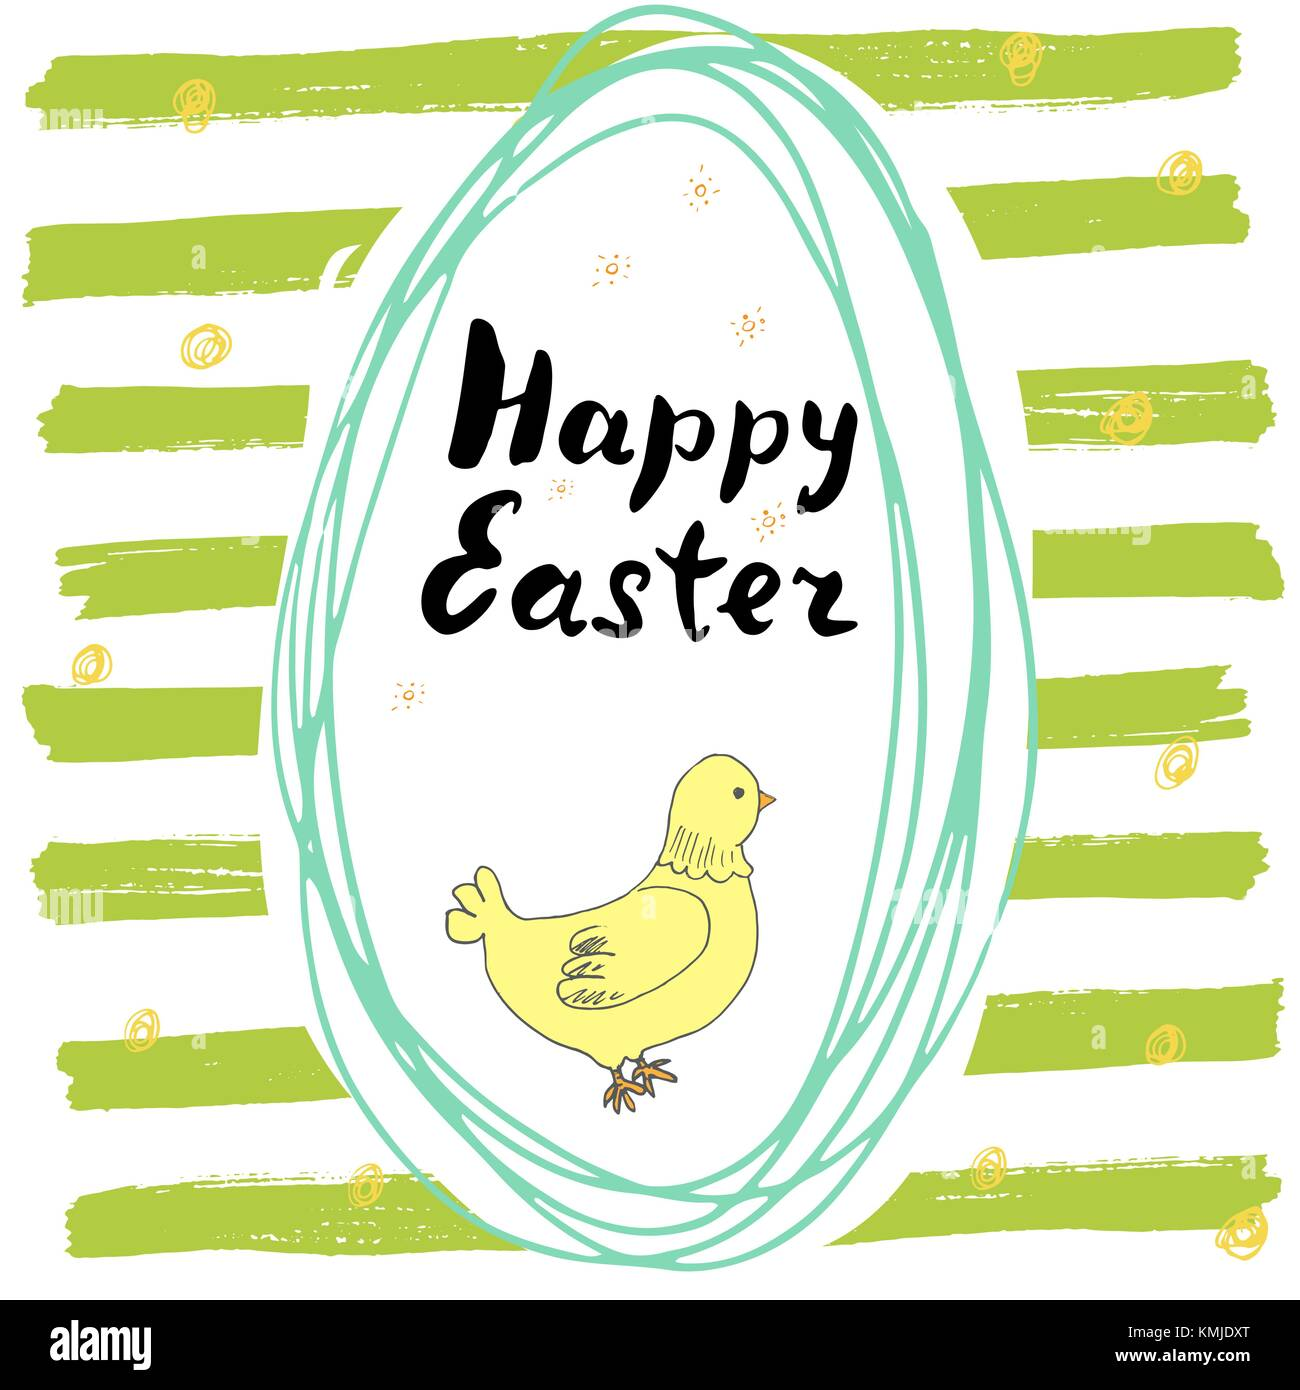 Happy easter hand drawn greeting card with lettering and sketched happy easter hand drawn greeting card with lettering and sketched doodle elements cute chicken in easter kristyandbryce Gallery